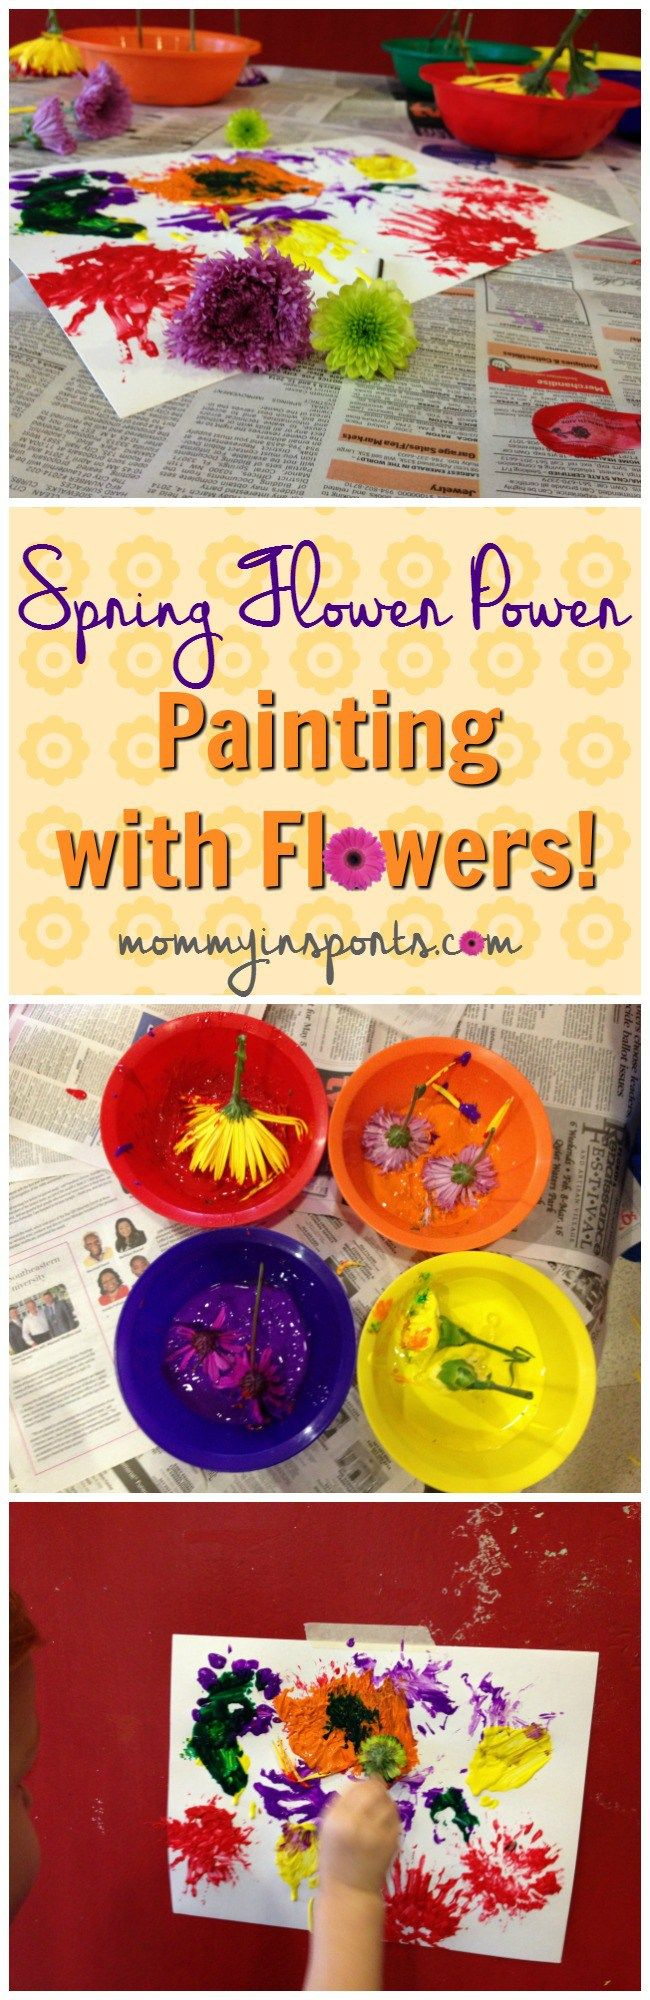 Looking for some fun ways to bring spring to your home? Why not paint with flowers? A fun craft for kids! Check out all of these Spring Flower Power Ideas!